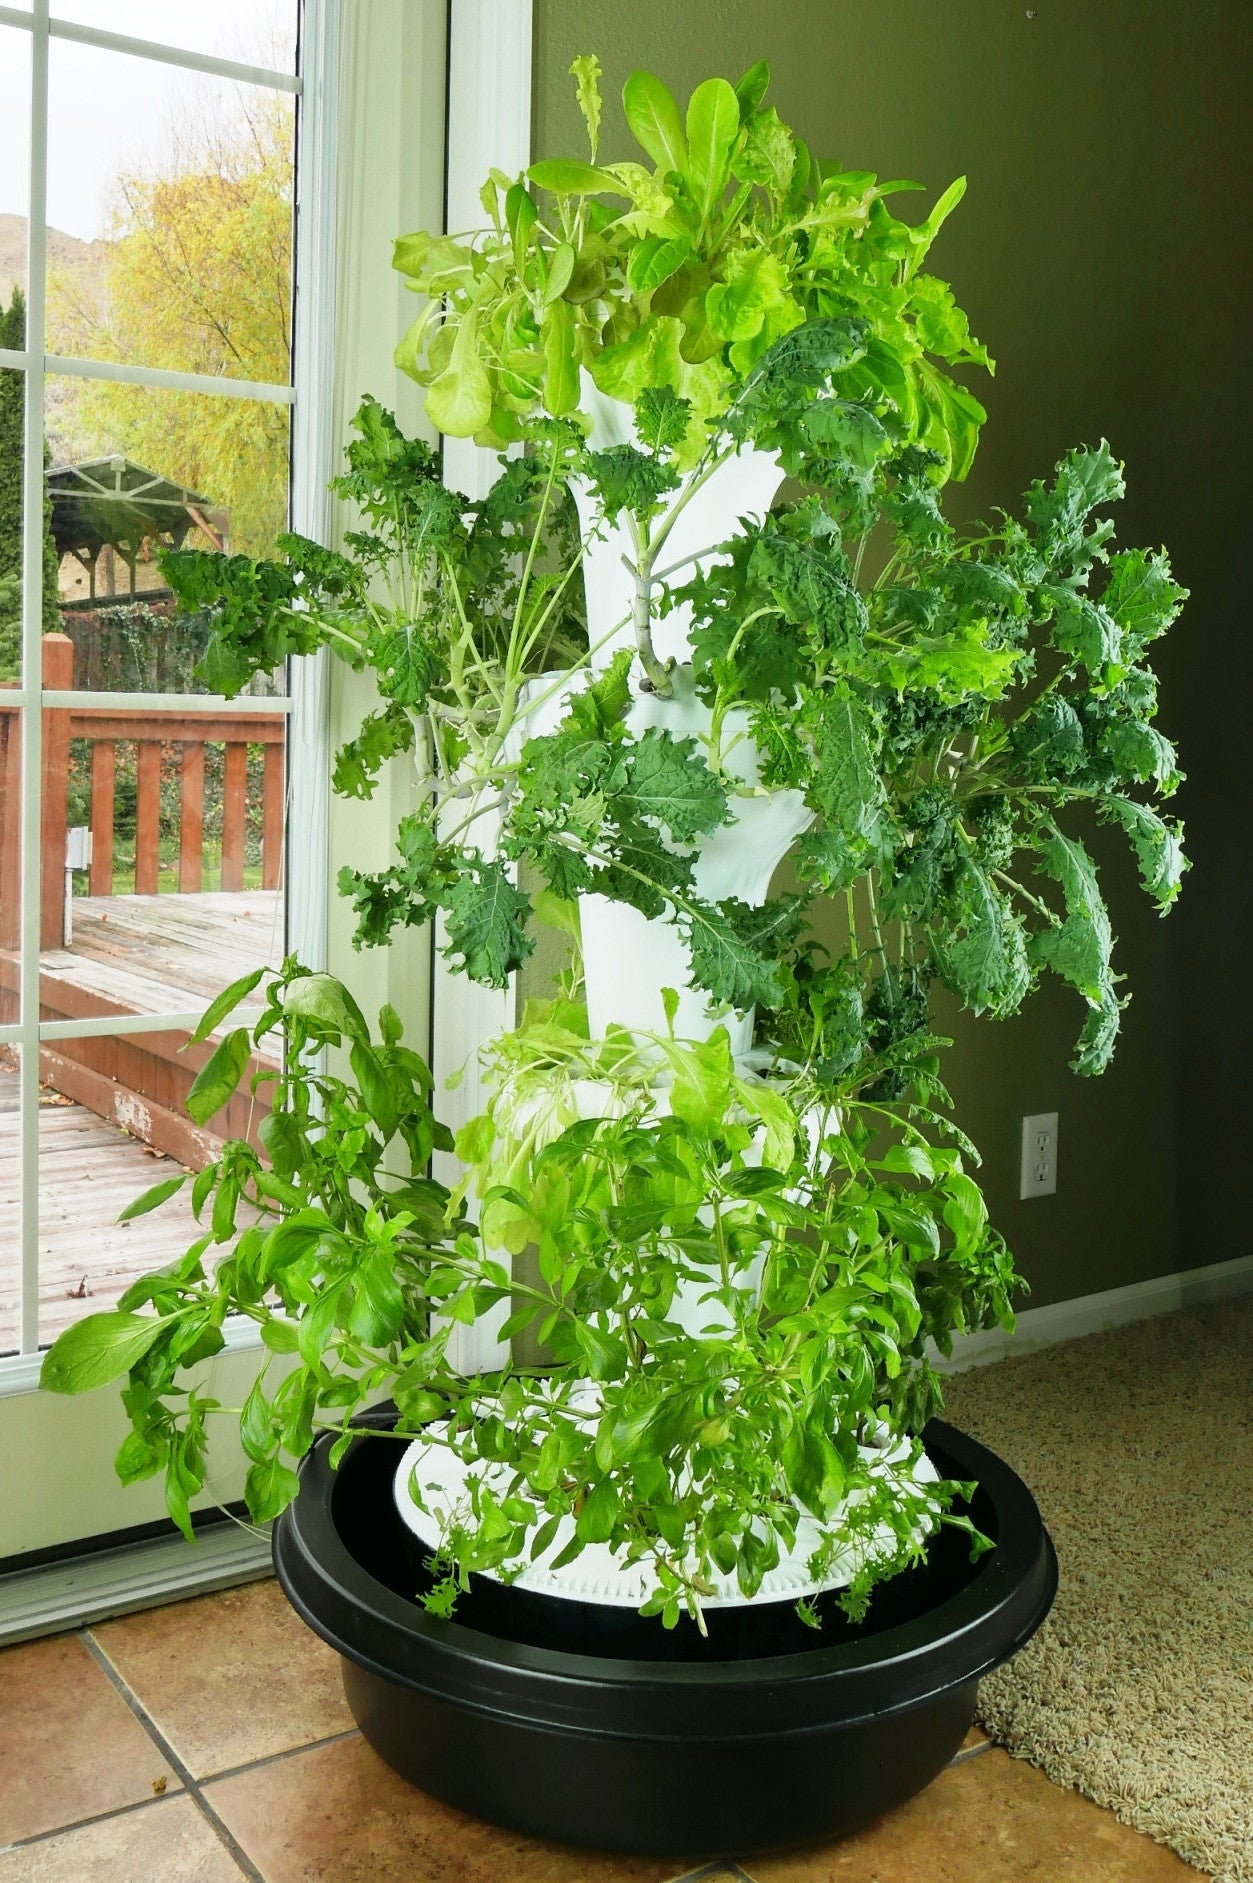 hydroponic tower garden. Foody 12 Hydroponic Tower Garden C